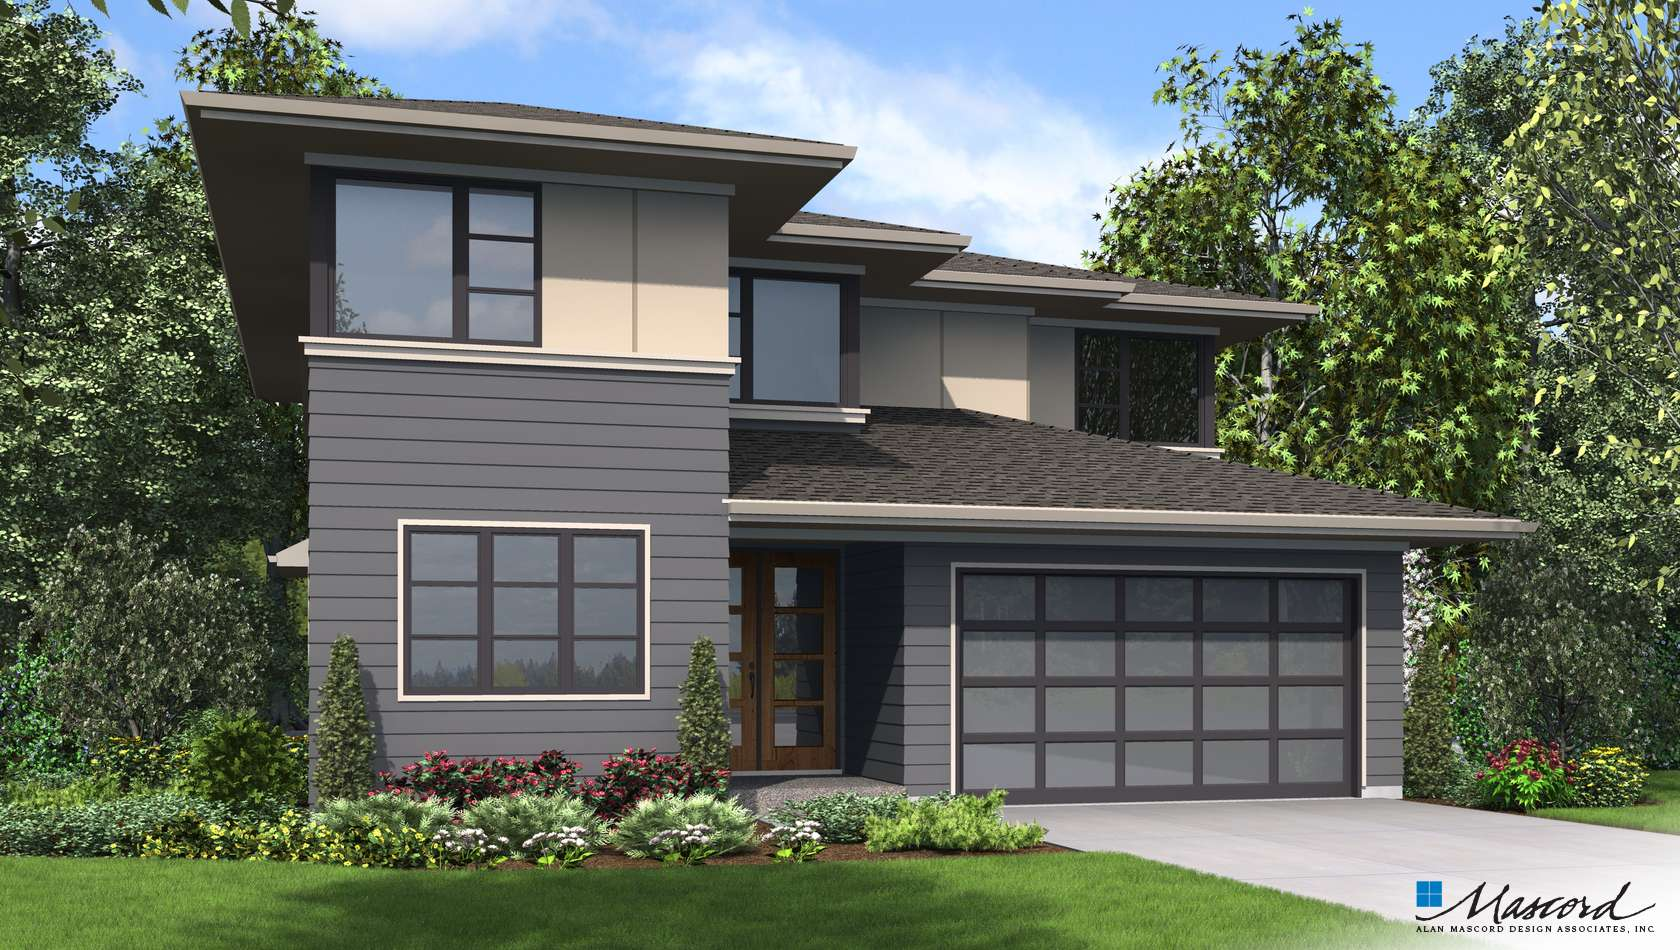 Main image for house plan 22209A: The Robertson